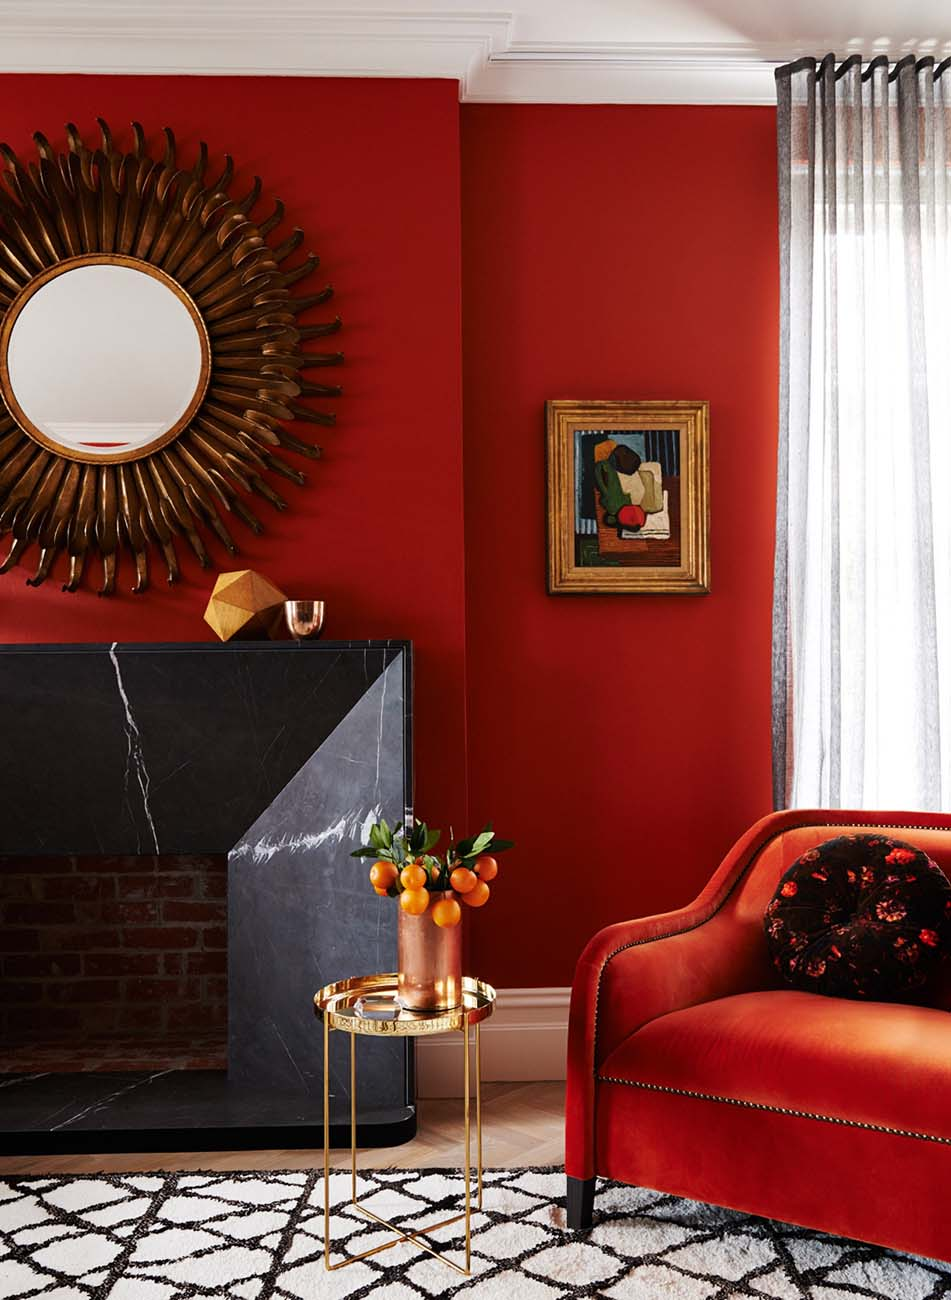 Mood Board Brighten Up Your Space with Flame 1 mood board Mood Board: Brighten Up Your Space with Flame Mood Board Brighten Up Your Space with Flame 2